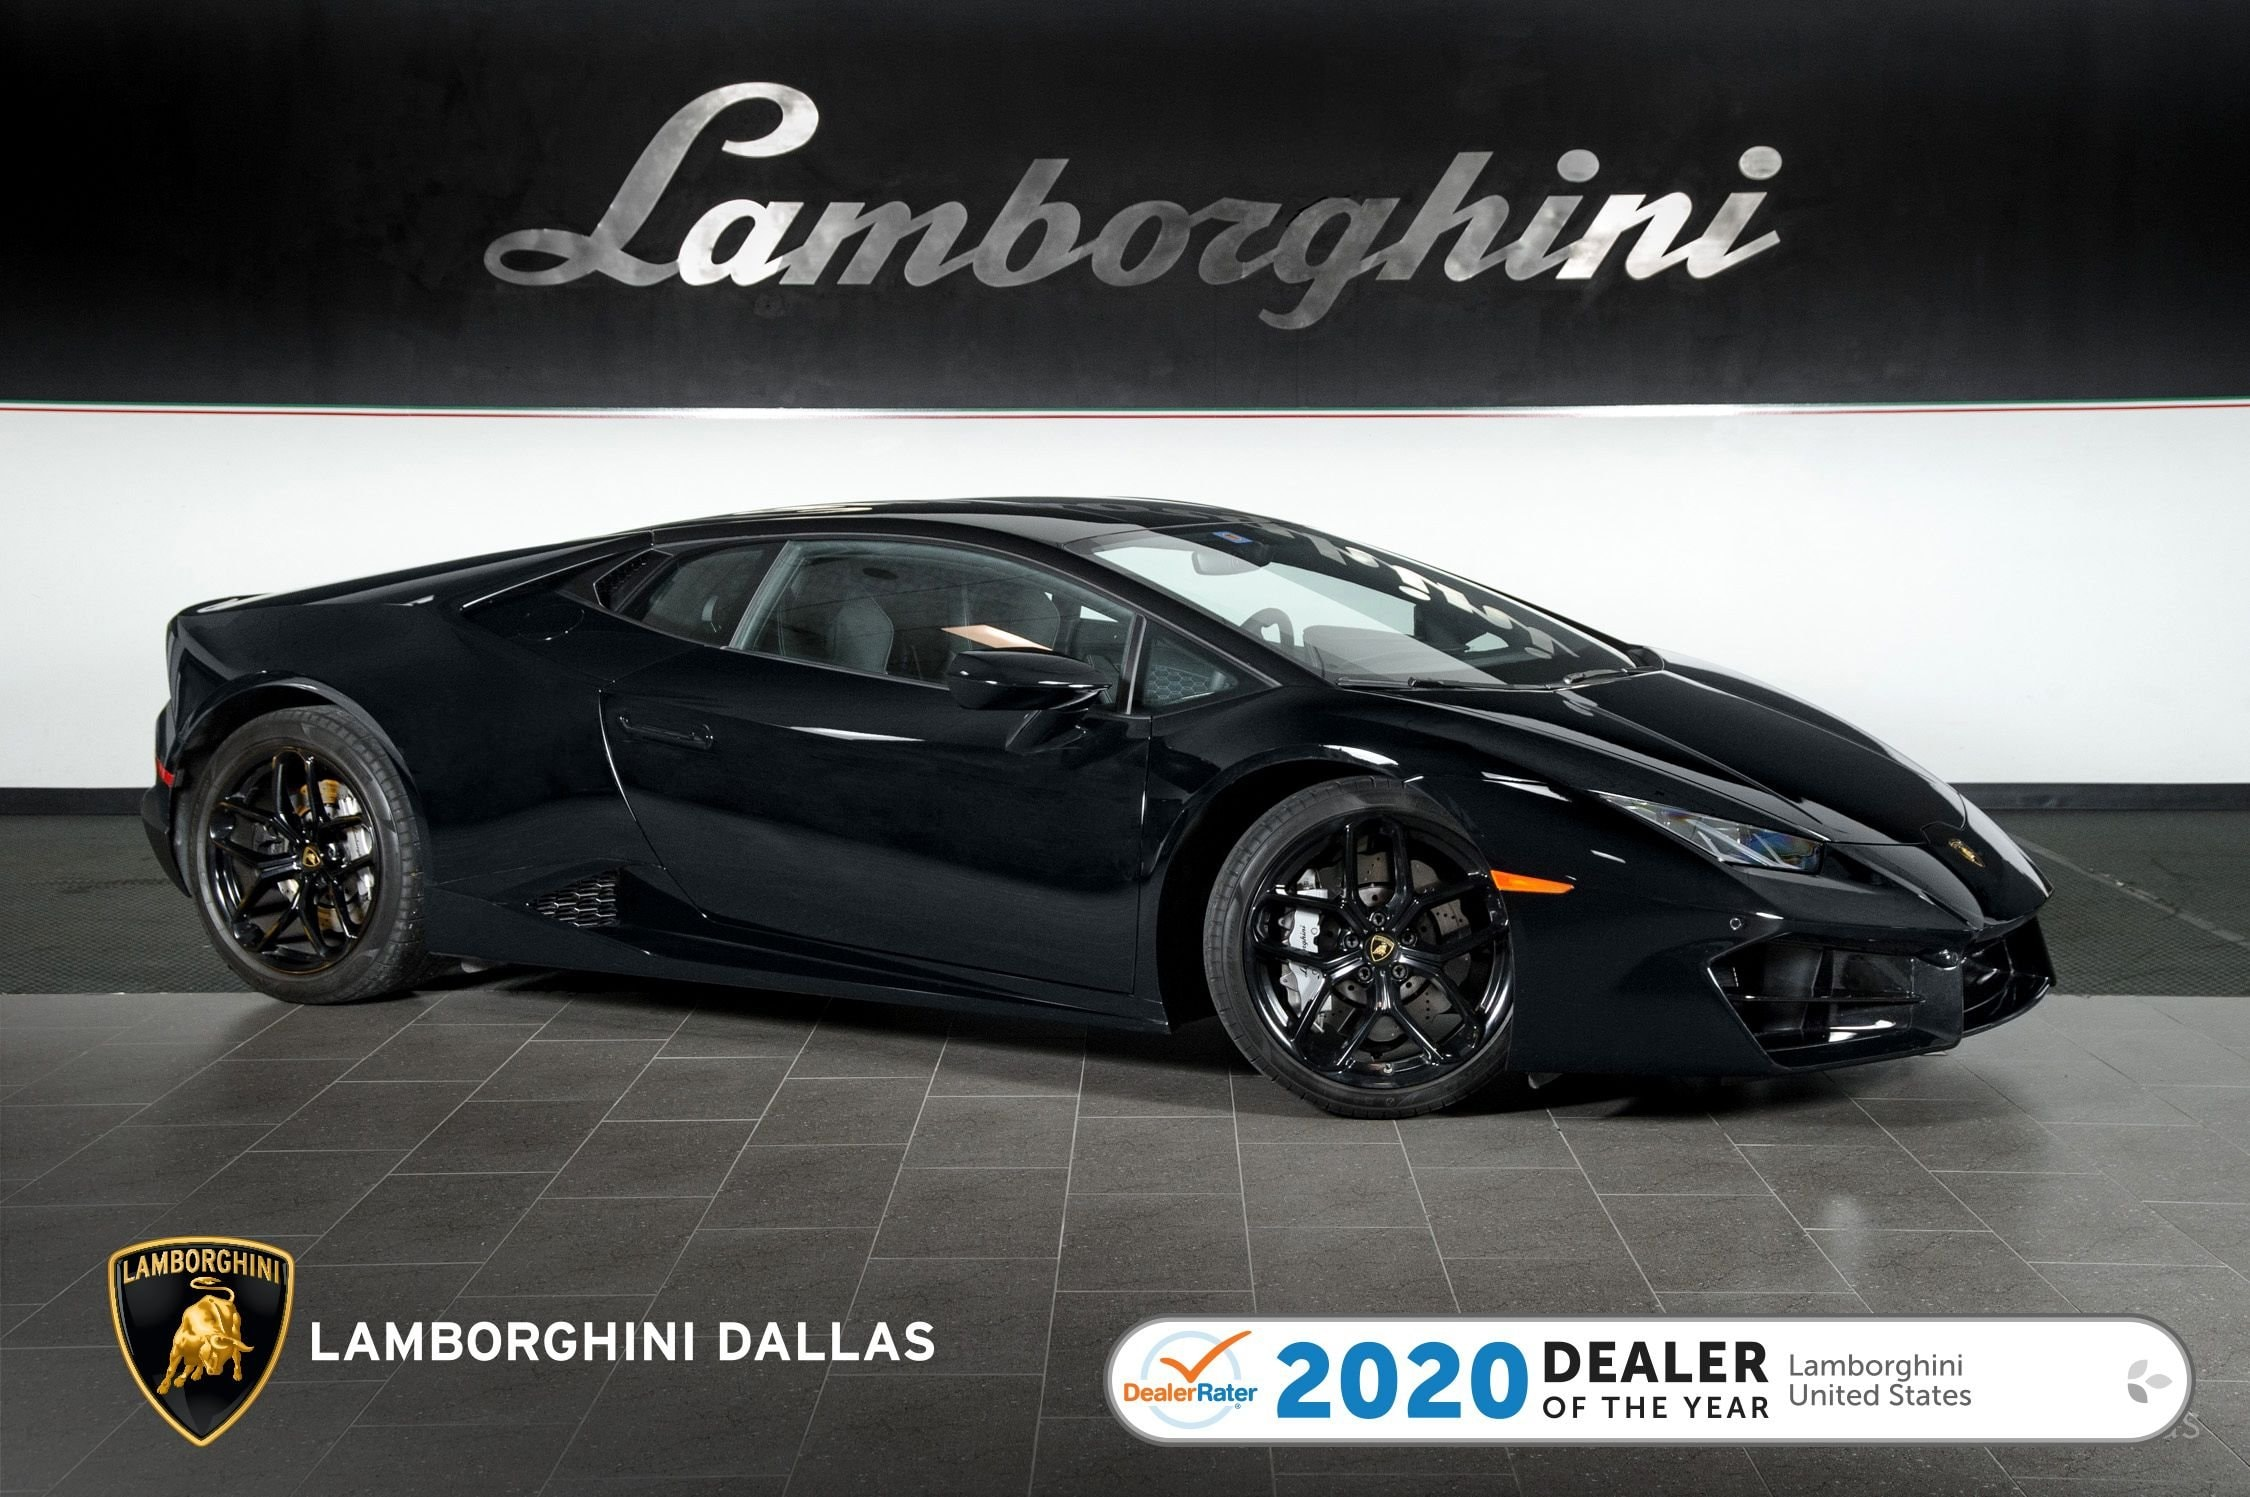 used 2019 Lamborghini Huracan 580-2 car, priced at $214,999